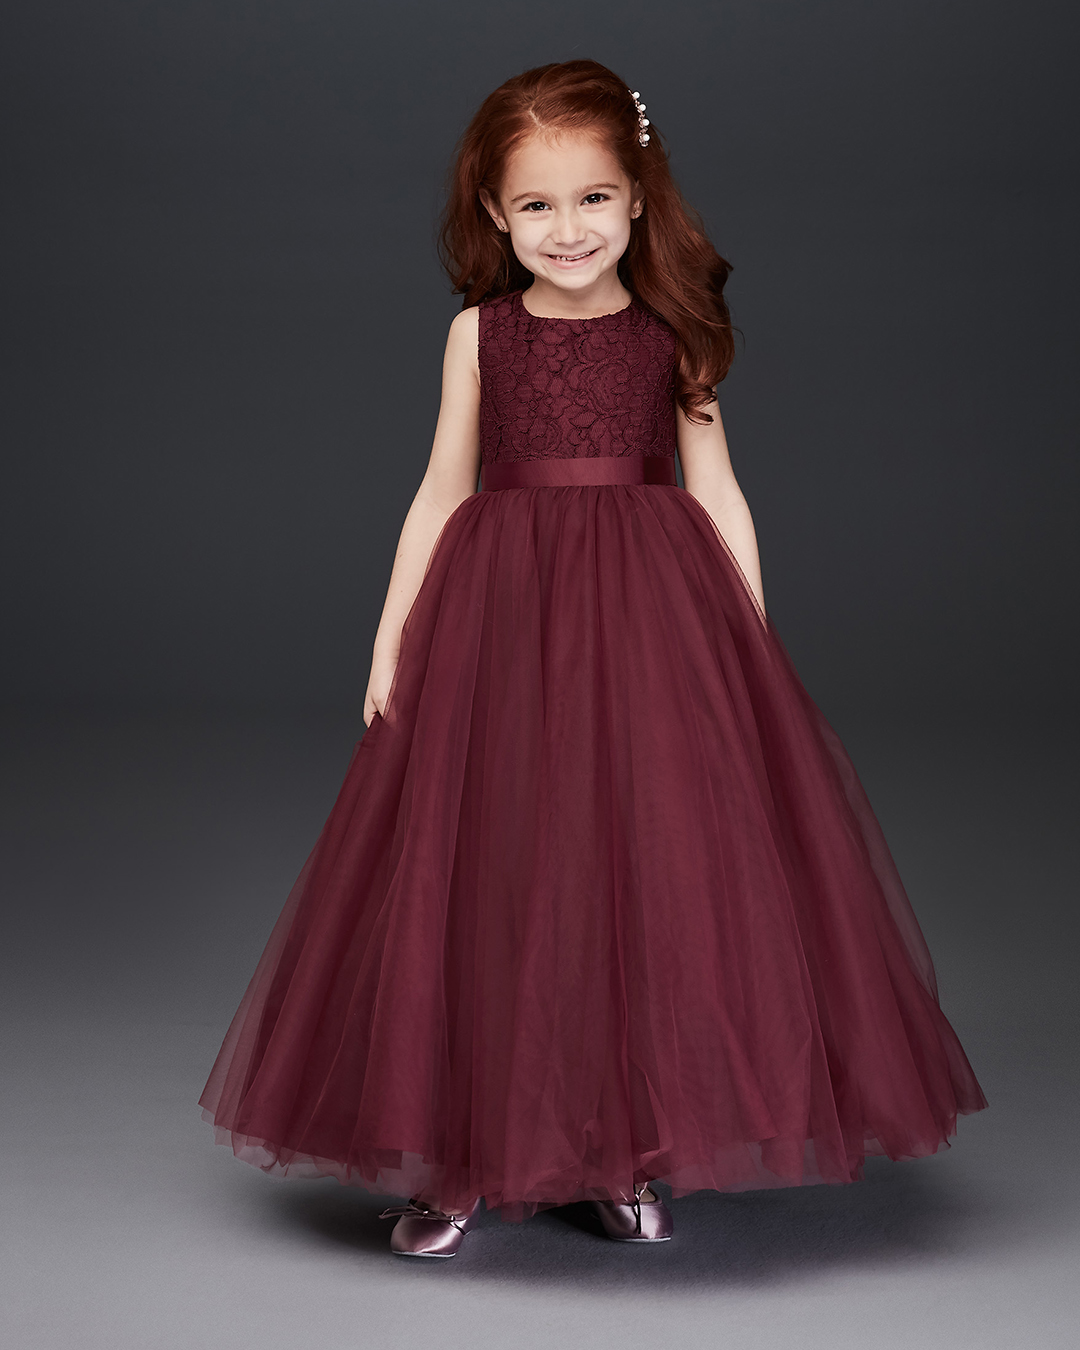 Flower girl in burgundy lace ball gown dress